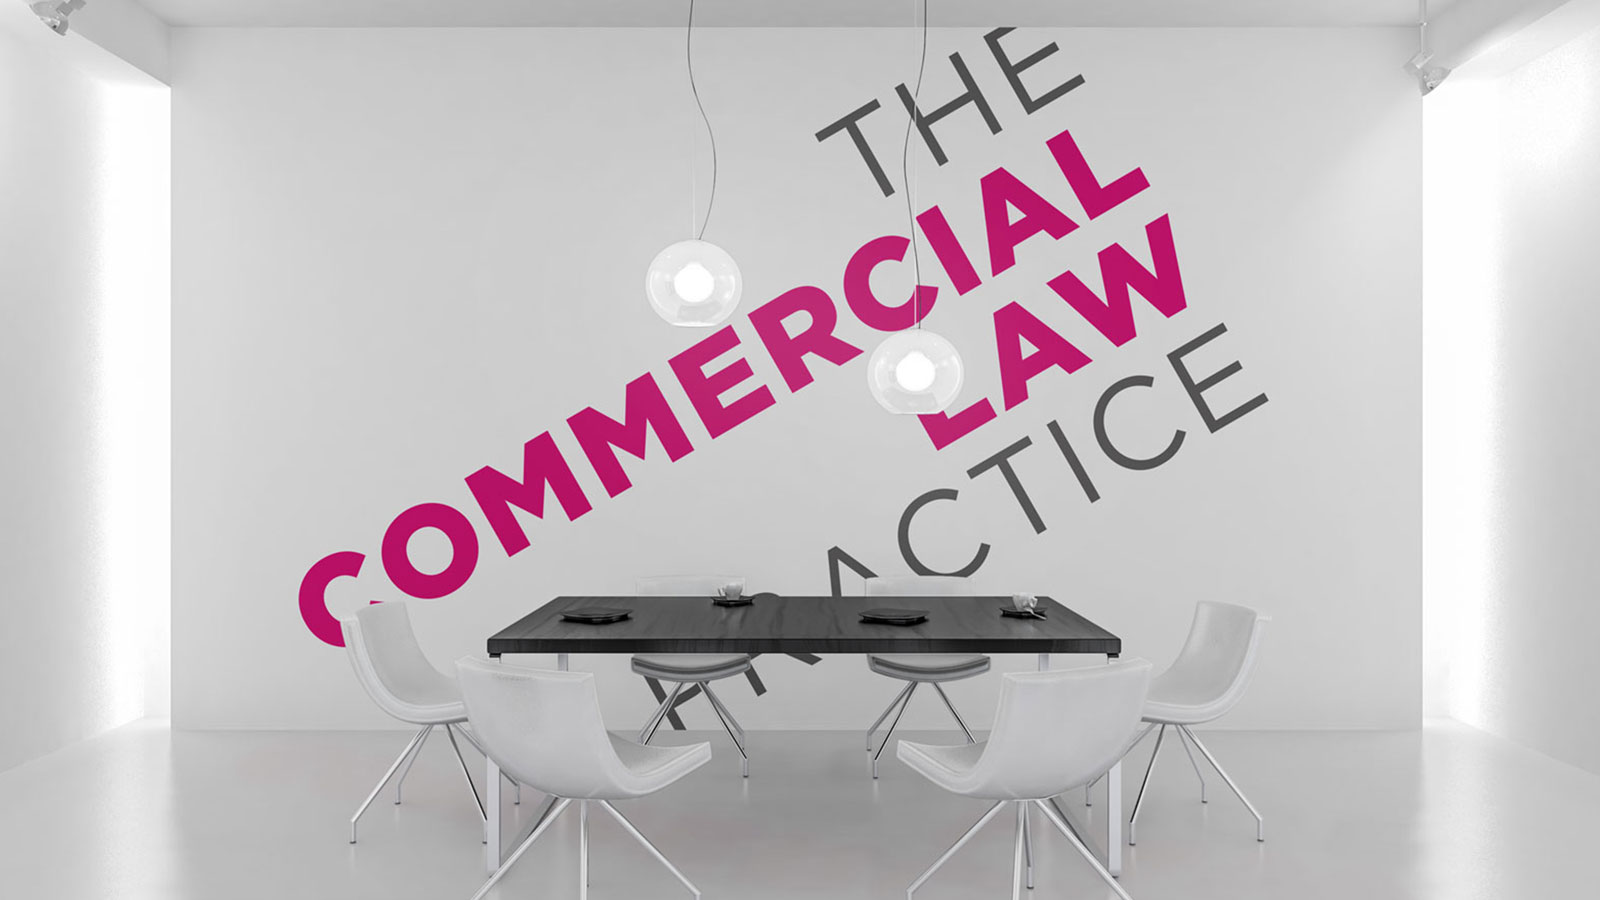 work-commercial-law-practice-wall